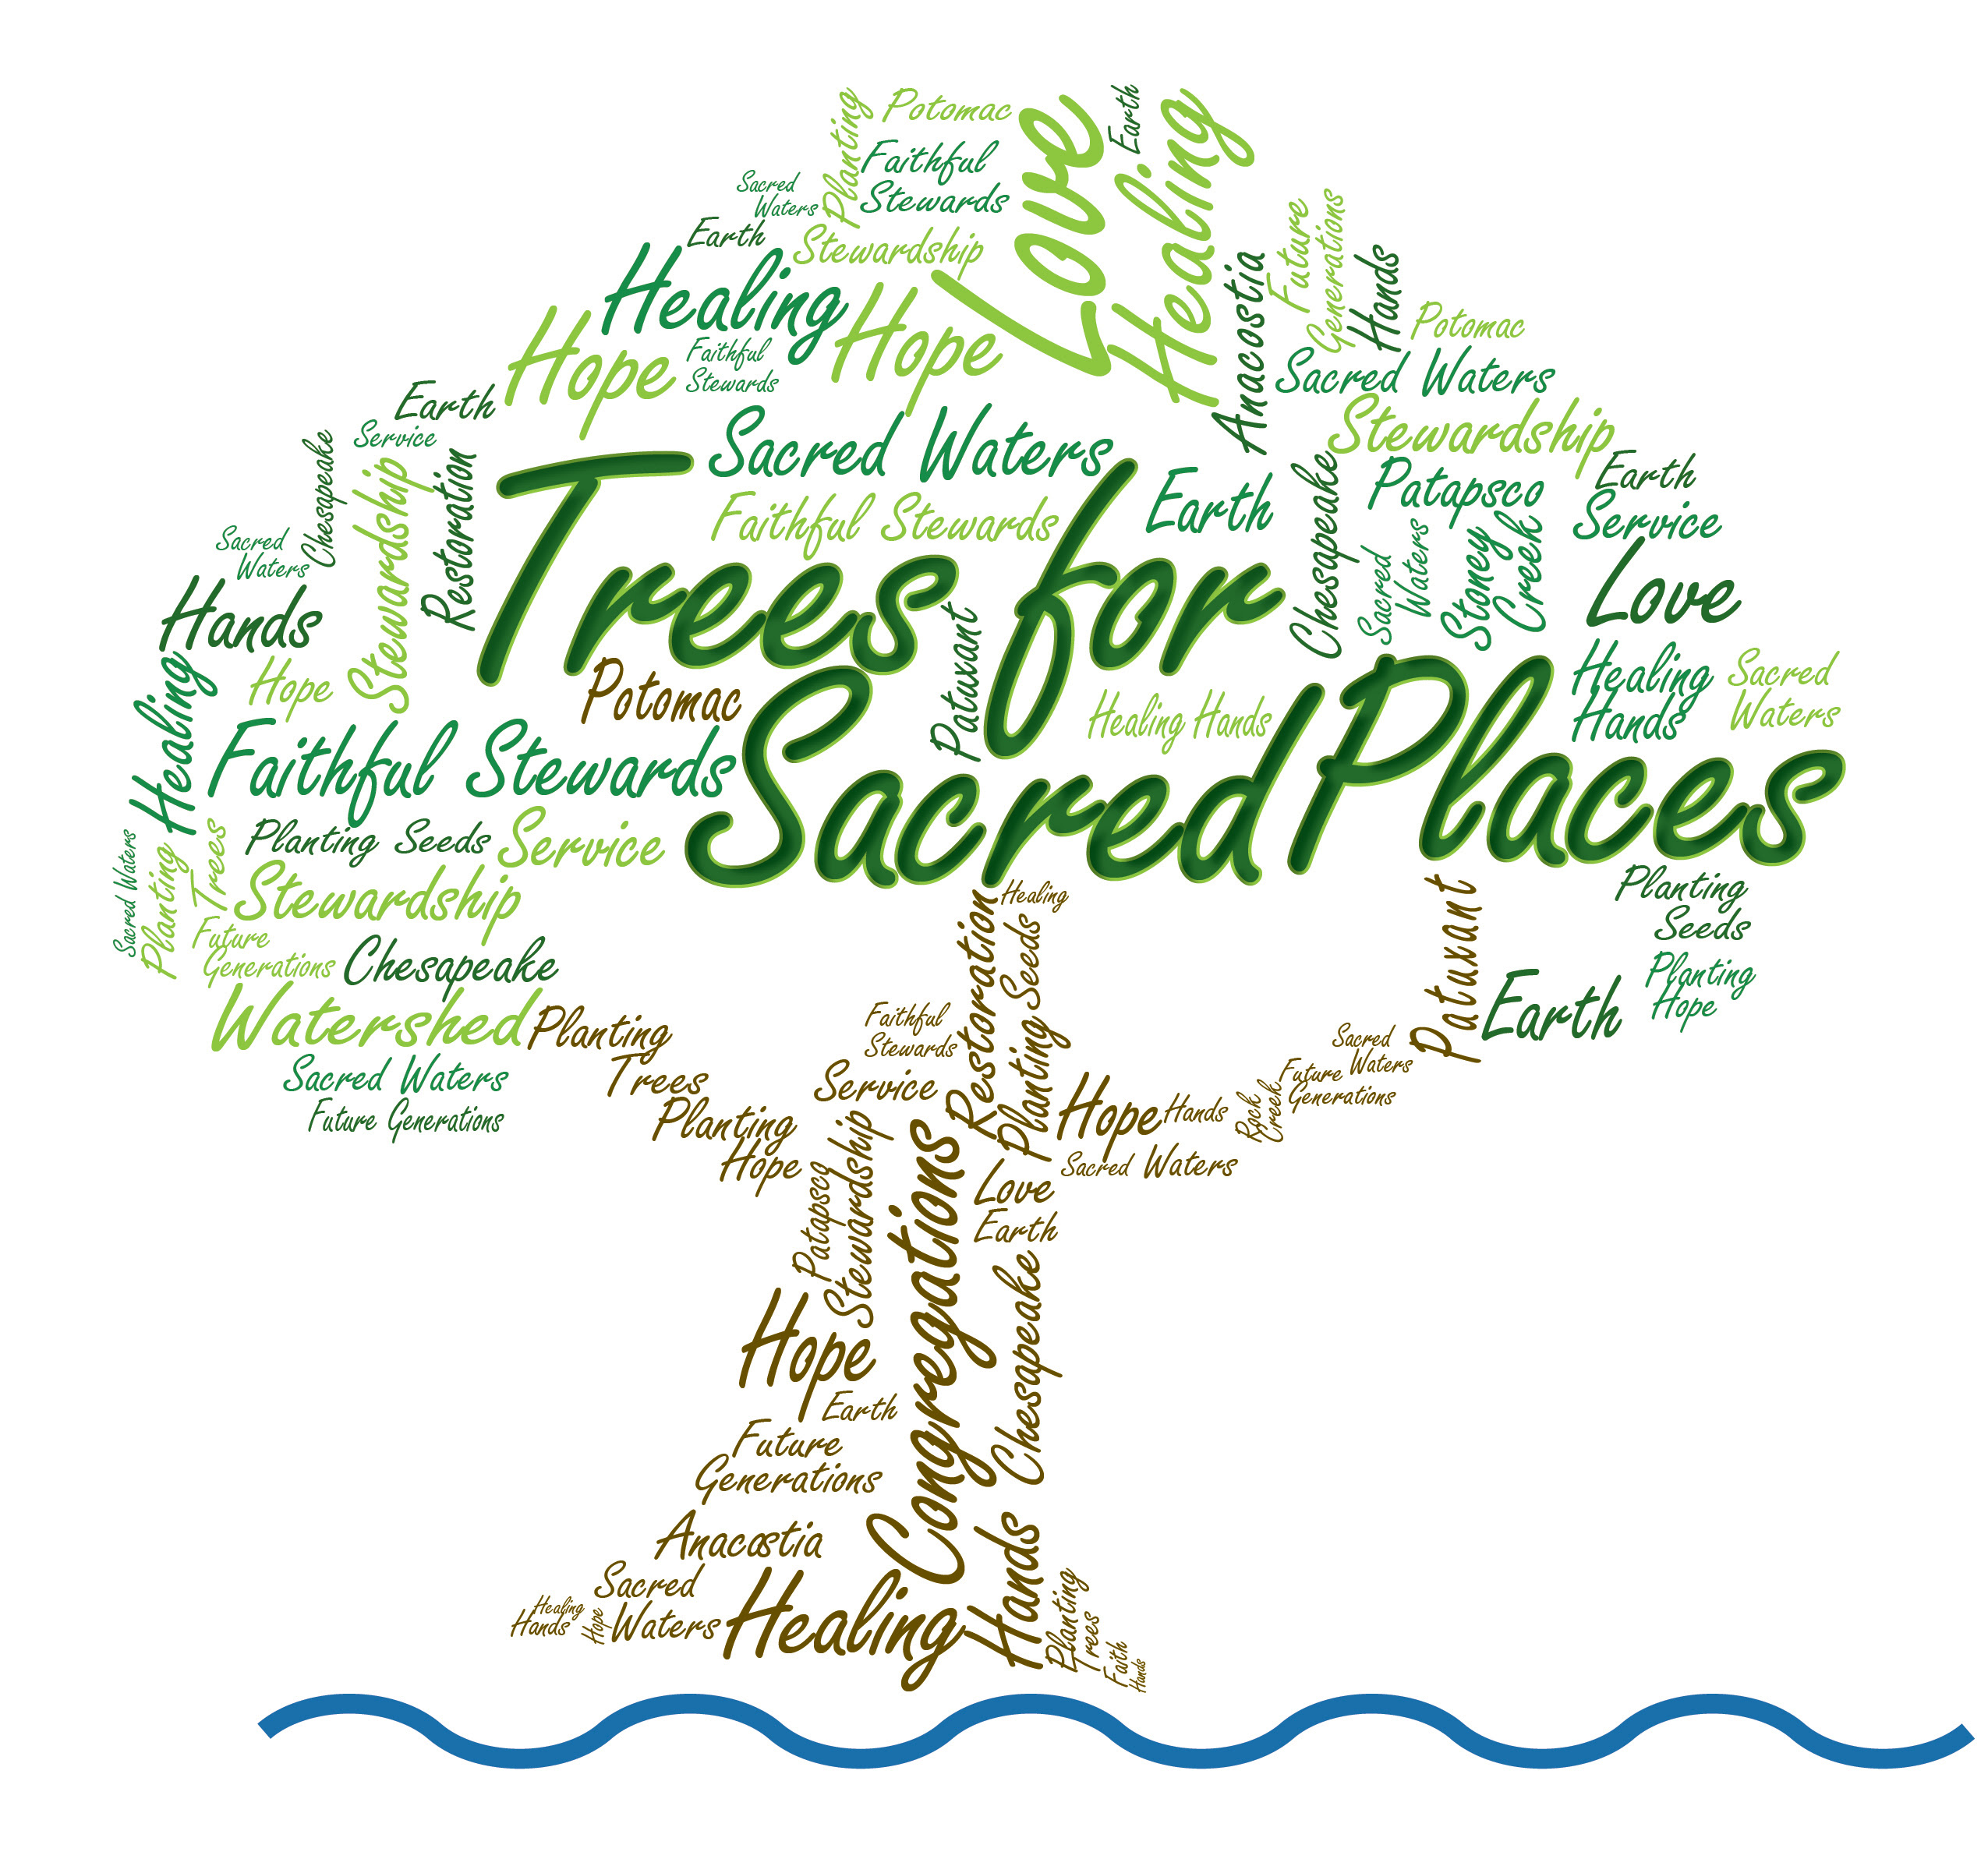 Trees_For_Sacred_Places_logo.jpg